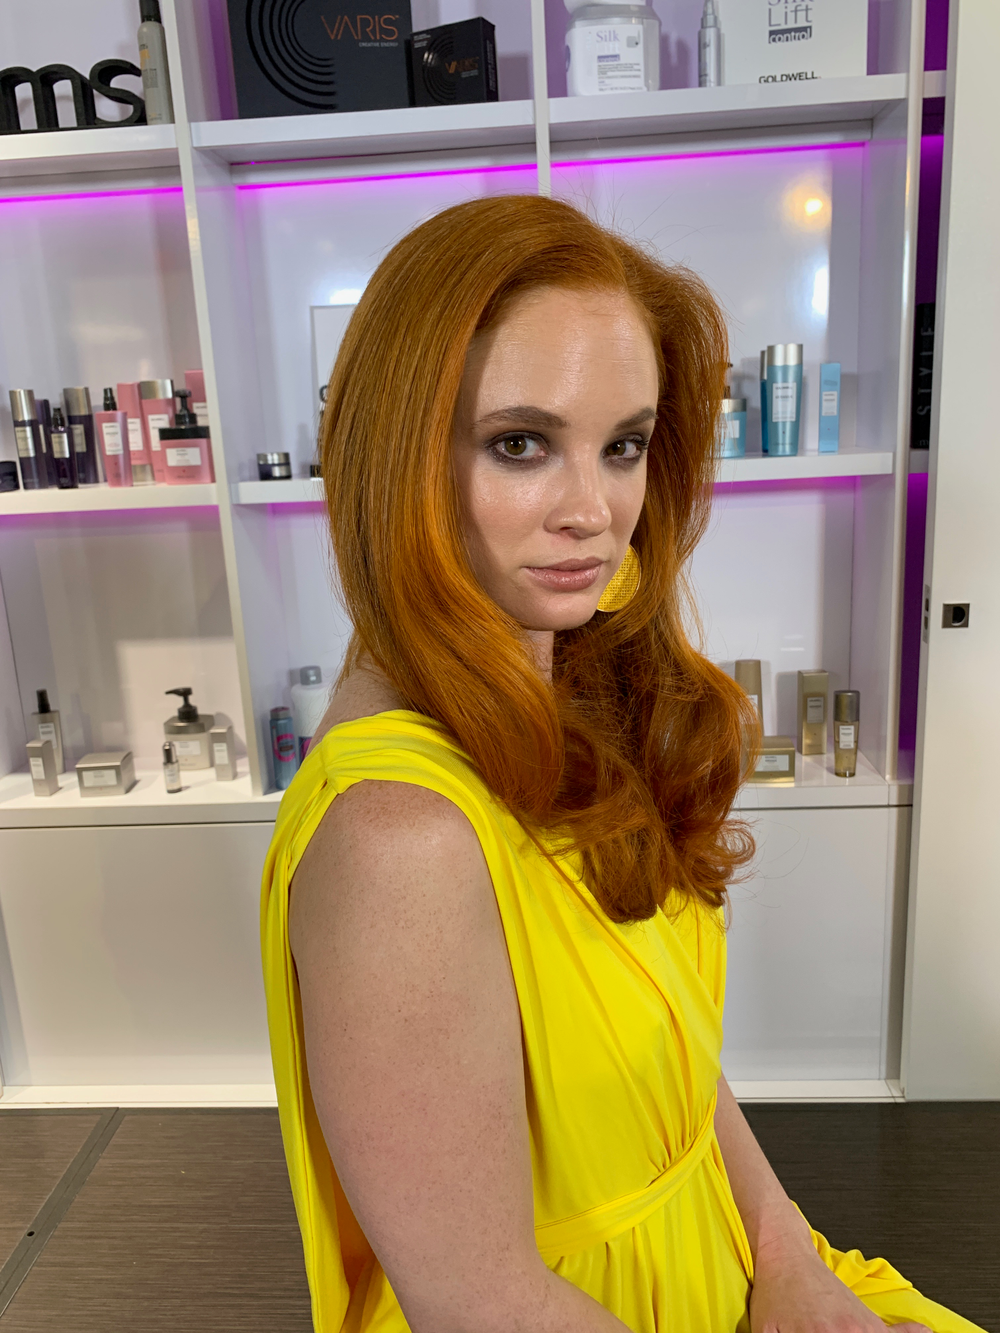 Hair color by Steven Picciano, using Goldwell.